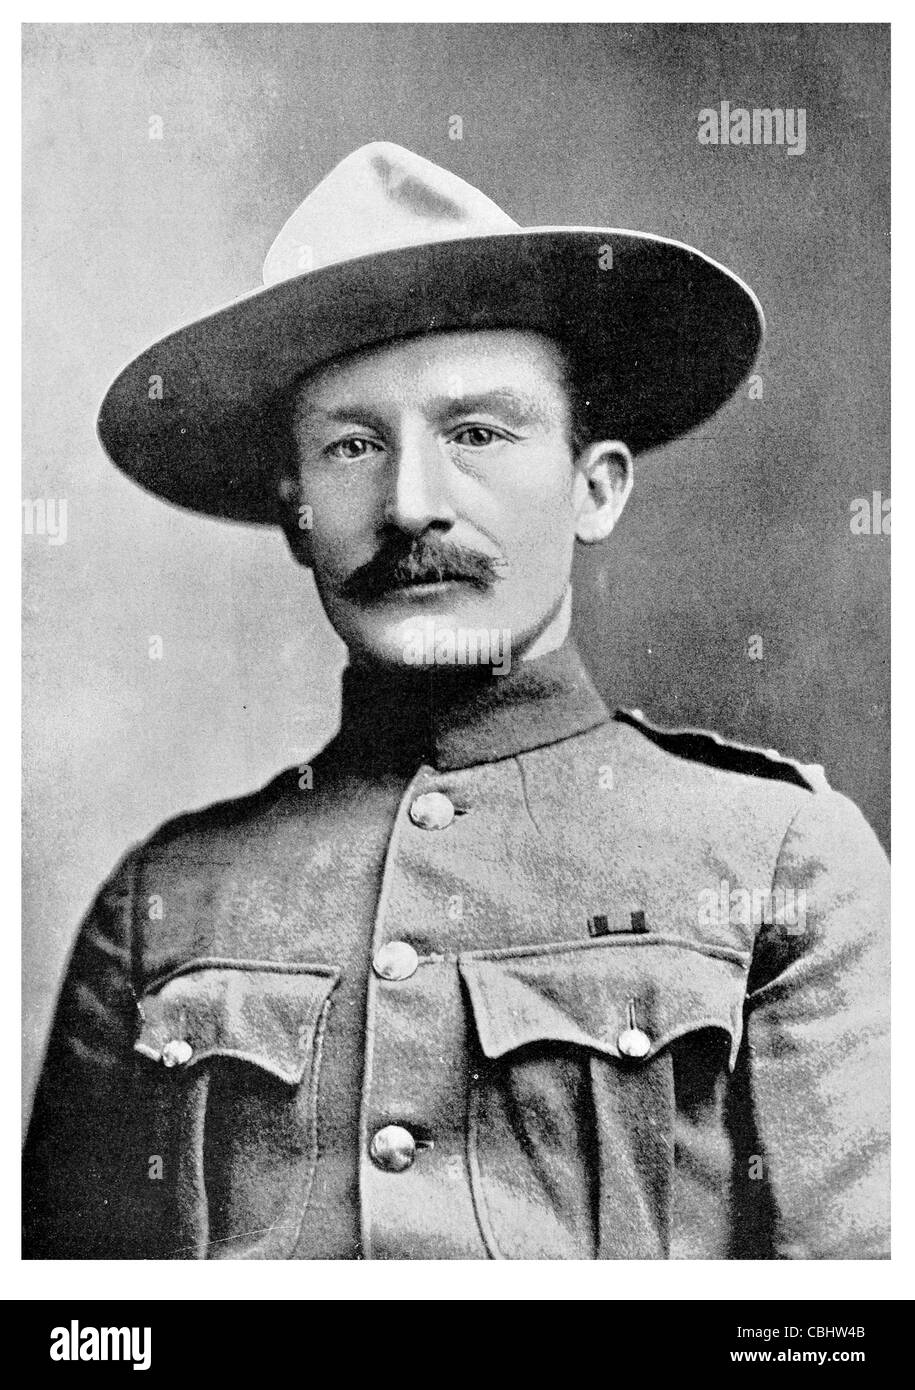 Lord Robert Stephenson Smyth Baden Powell 1st Baron 1857 1941 lieutenant general British Army writer Scout Movement - Stock Image